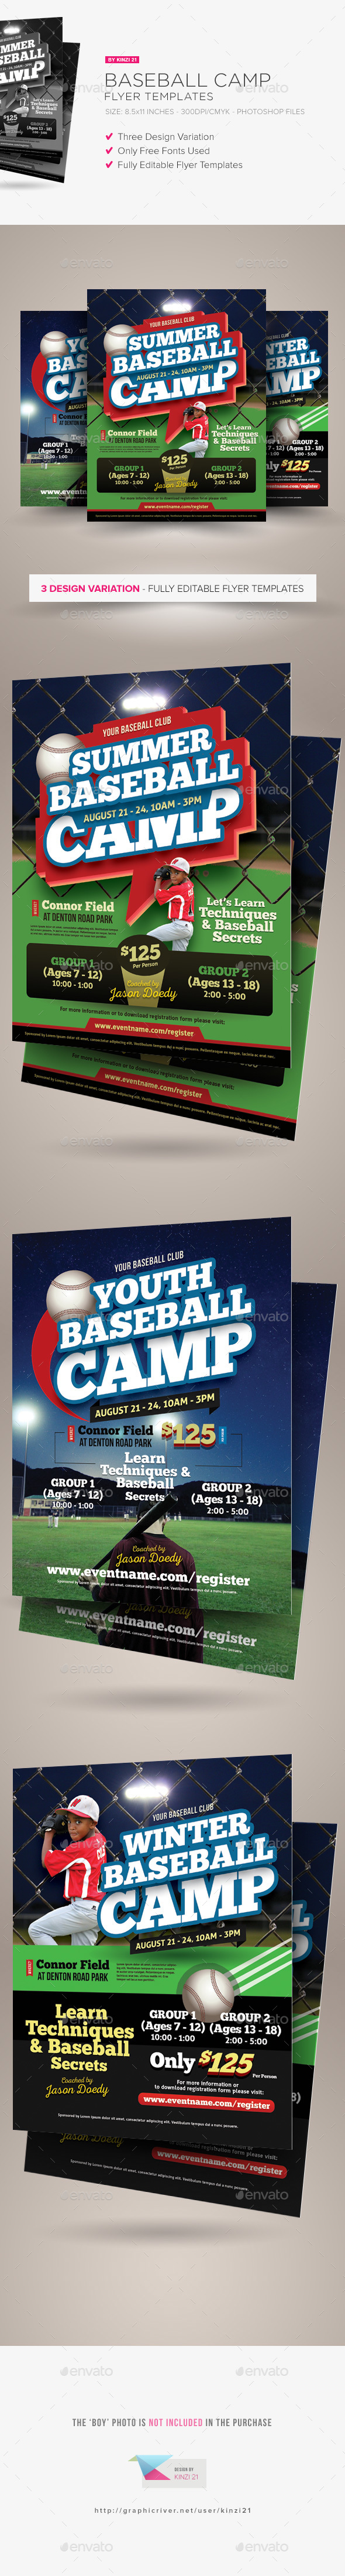 Baseball Camp Flyer Templates - Sports Events